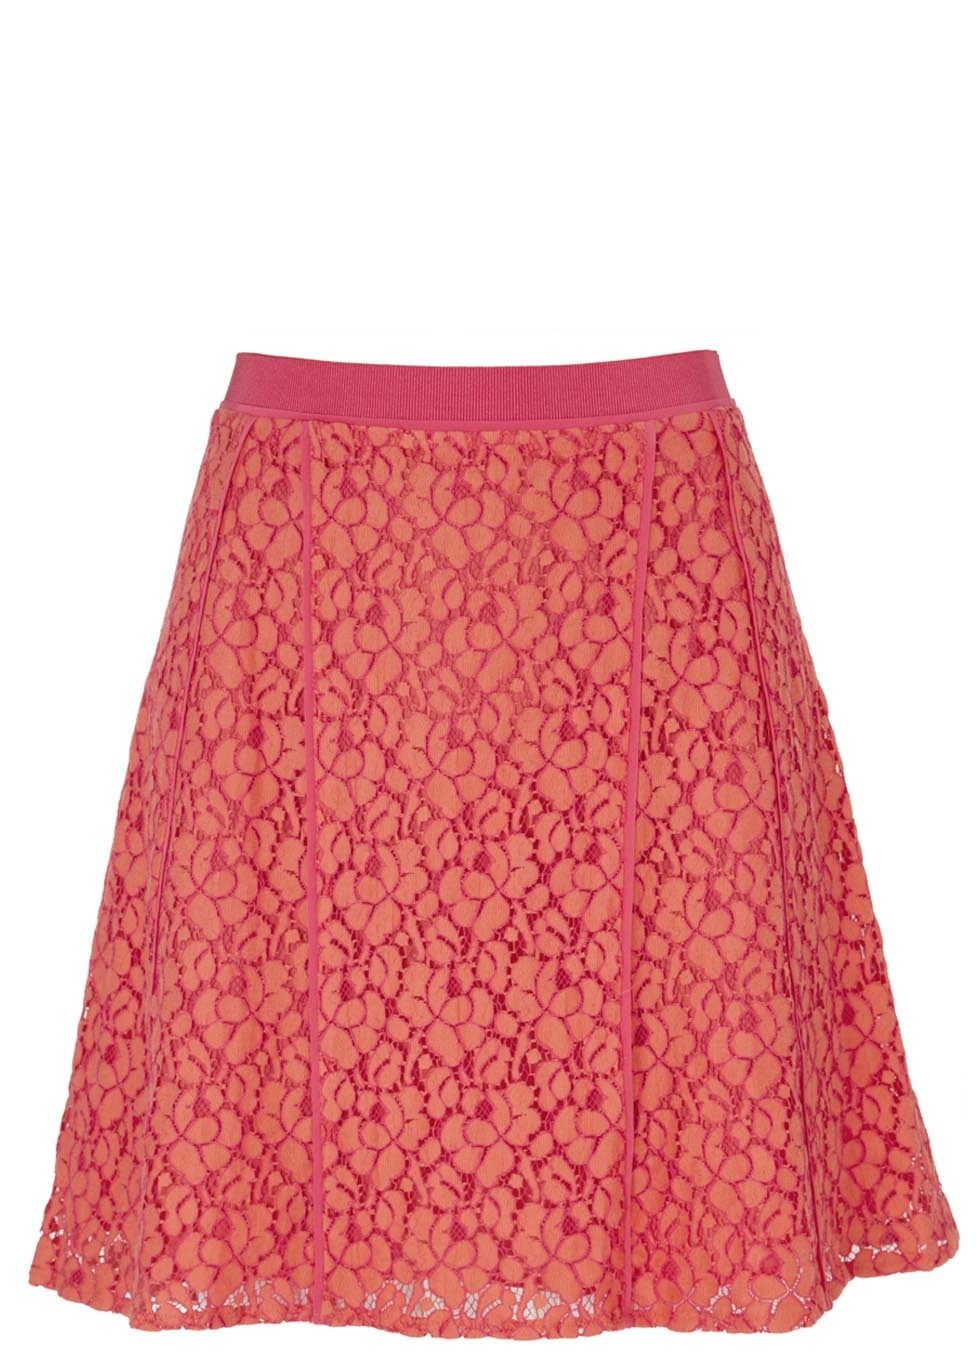 Luna Orange And Pink Lace Skirt Size - length: mid thigh; fit: loose/voluminous; waist detail: elasticated waist; waist: high rise; predominant colour: bright orange; occasions: casual, creative work; style: a-line; fibres: cotton - mix; hip detail: subtle/flattering hip detail; texture group: lace; pattern type: fabric; pattern: patterned/print; embellishment: lace; season: s/s 2014; wardrobe: highlight; embellishment location: all over